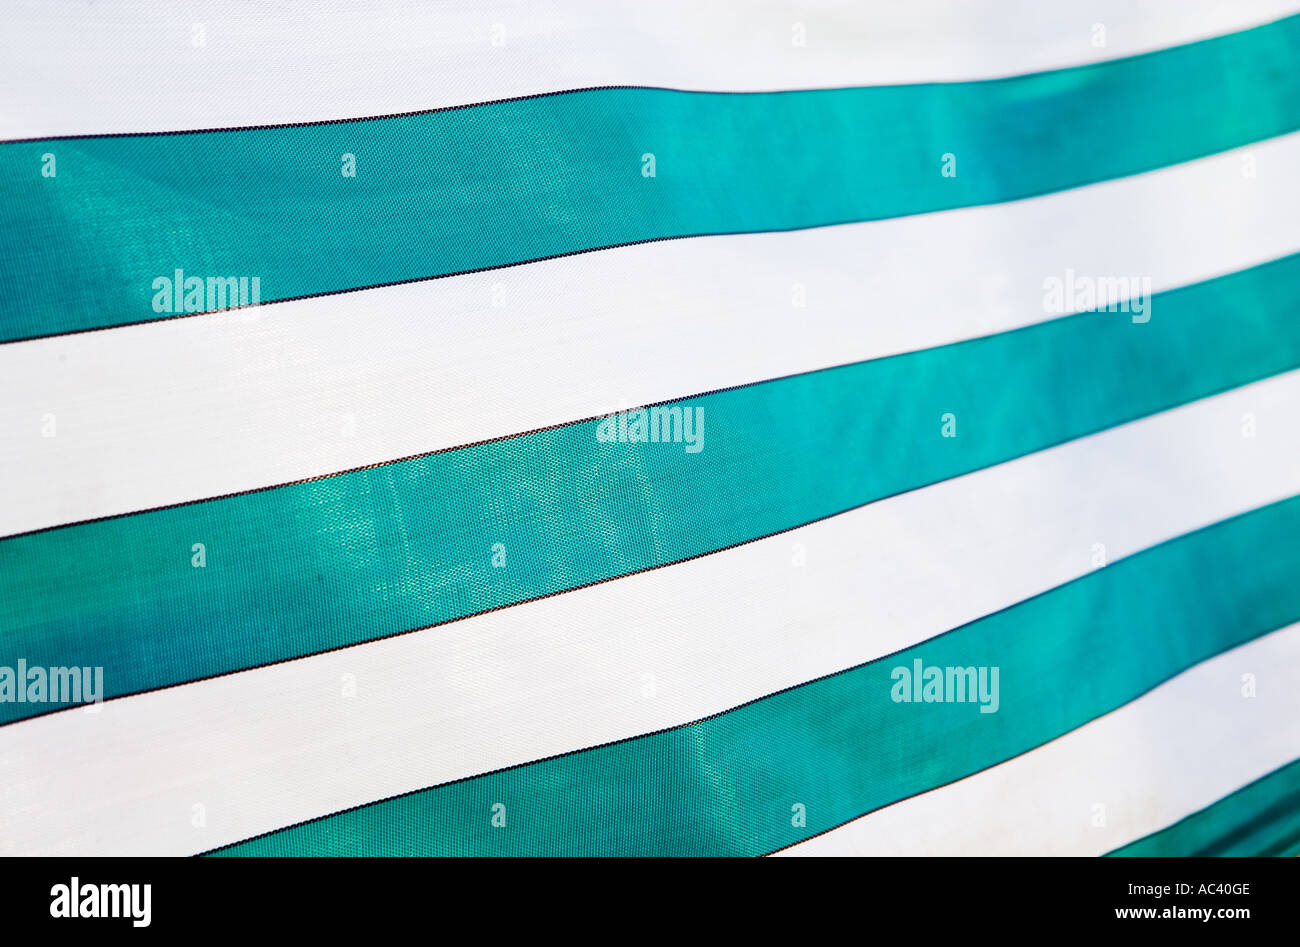 Stripy deckchair fabric - Stock Image & Deckchair Fabric Stock Photos u0026 Deckchair Fabric Stock Images - Alamy